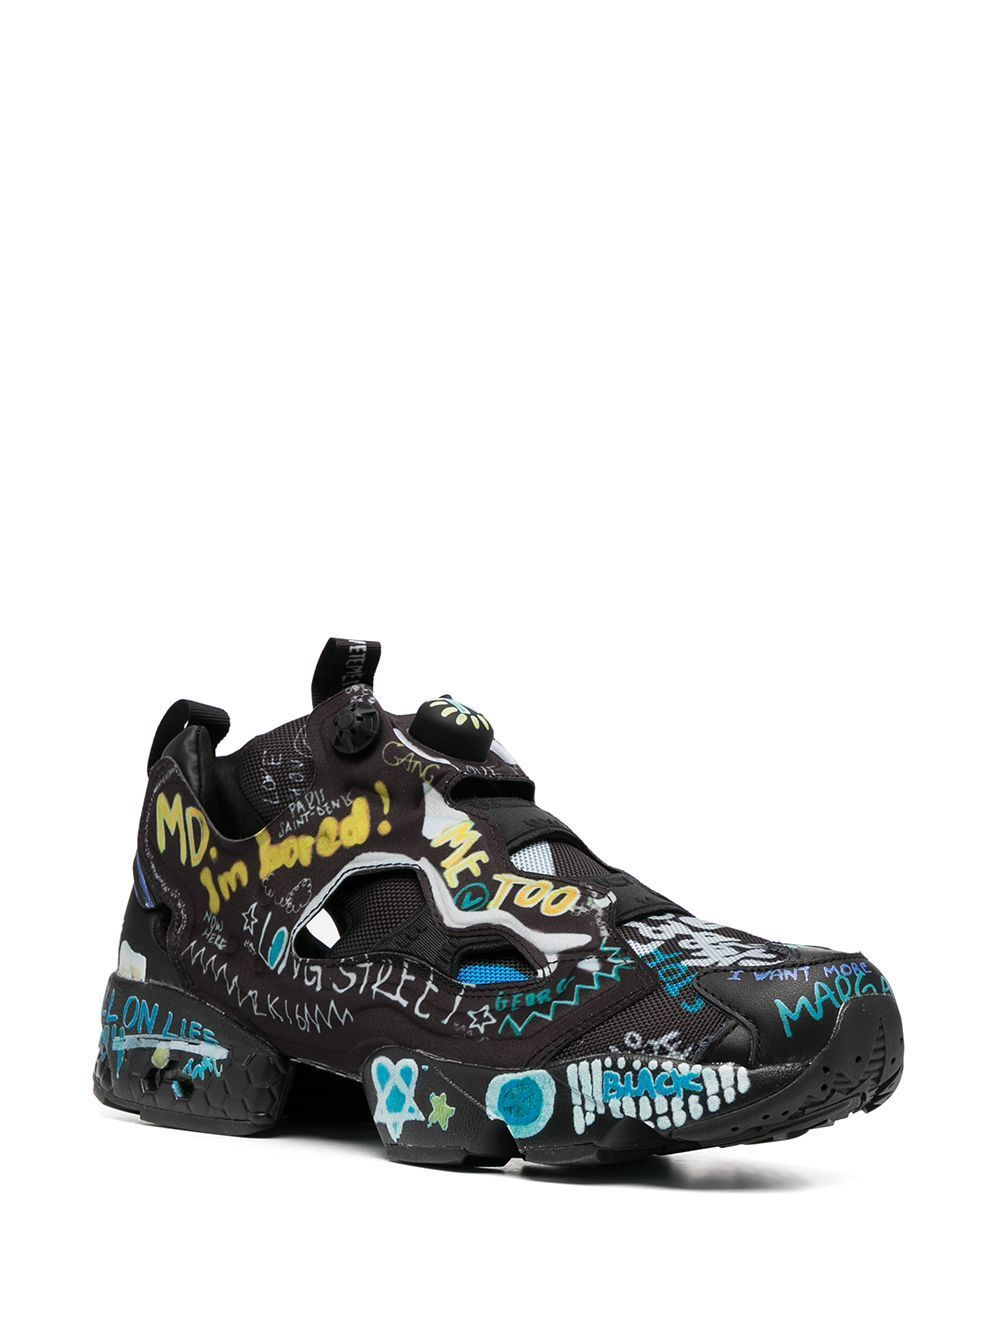 VETEMENTS Reebok Graffiti Pump Black - Maison De Fashion